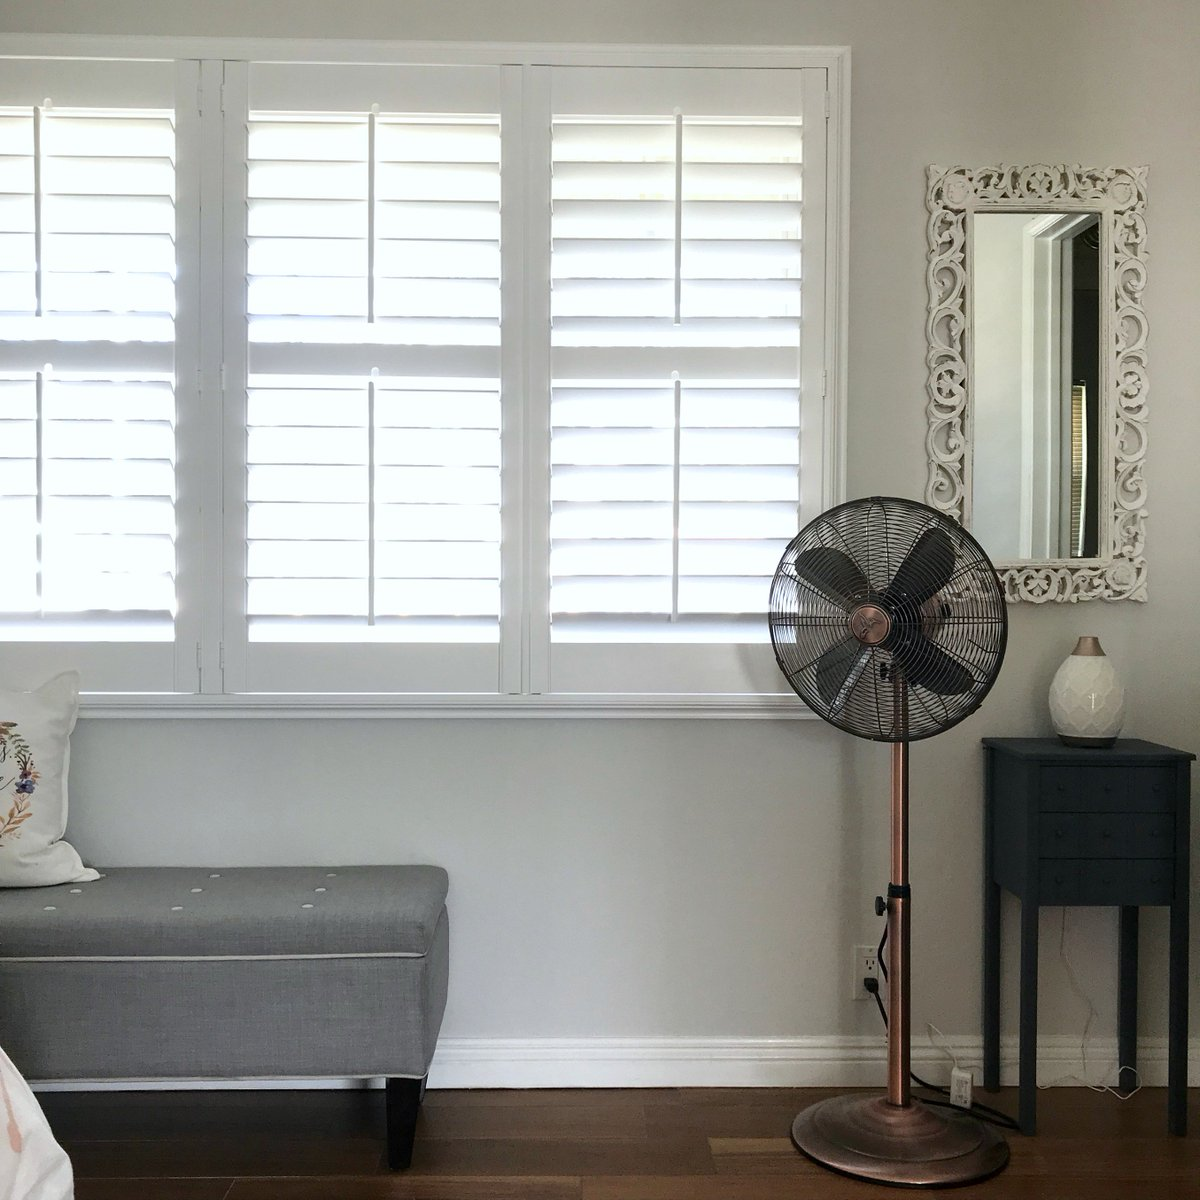 ... Down Below We Can See If There Are Any Local Design Consultants In Your  Area! #3DayBlinds #WindowTreatments  #NationalHaikuDaypic.twitter.com/EXPHlChyGT